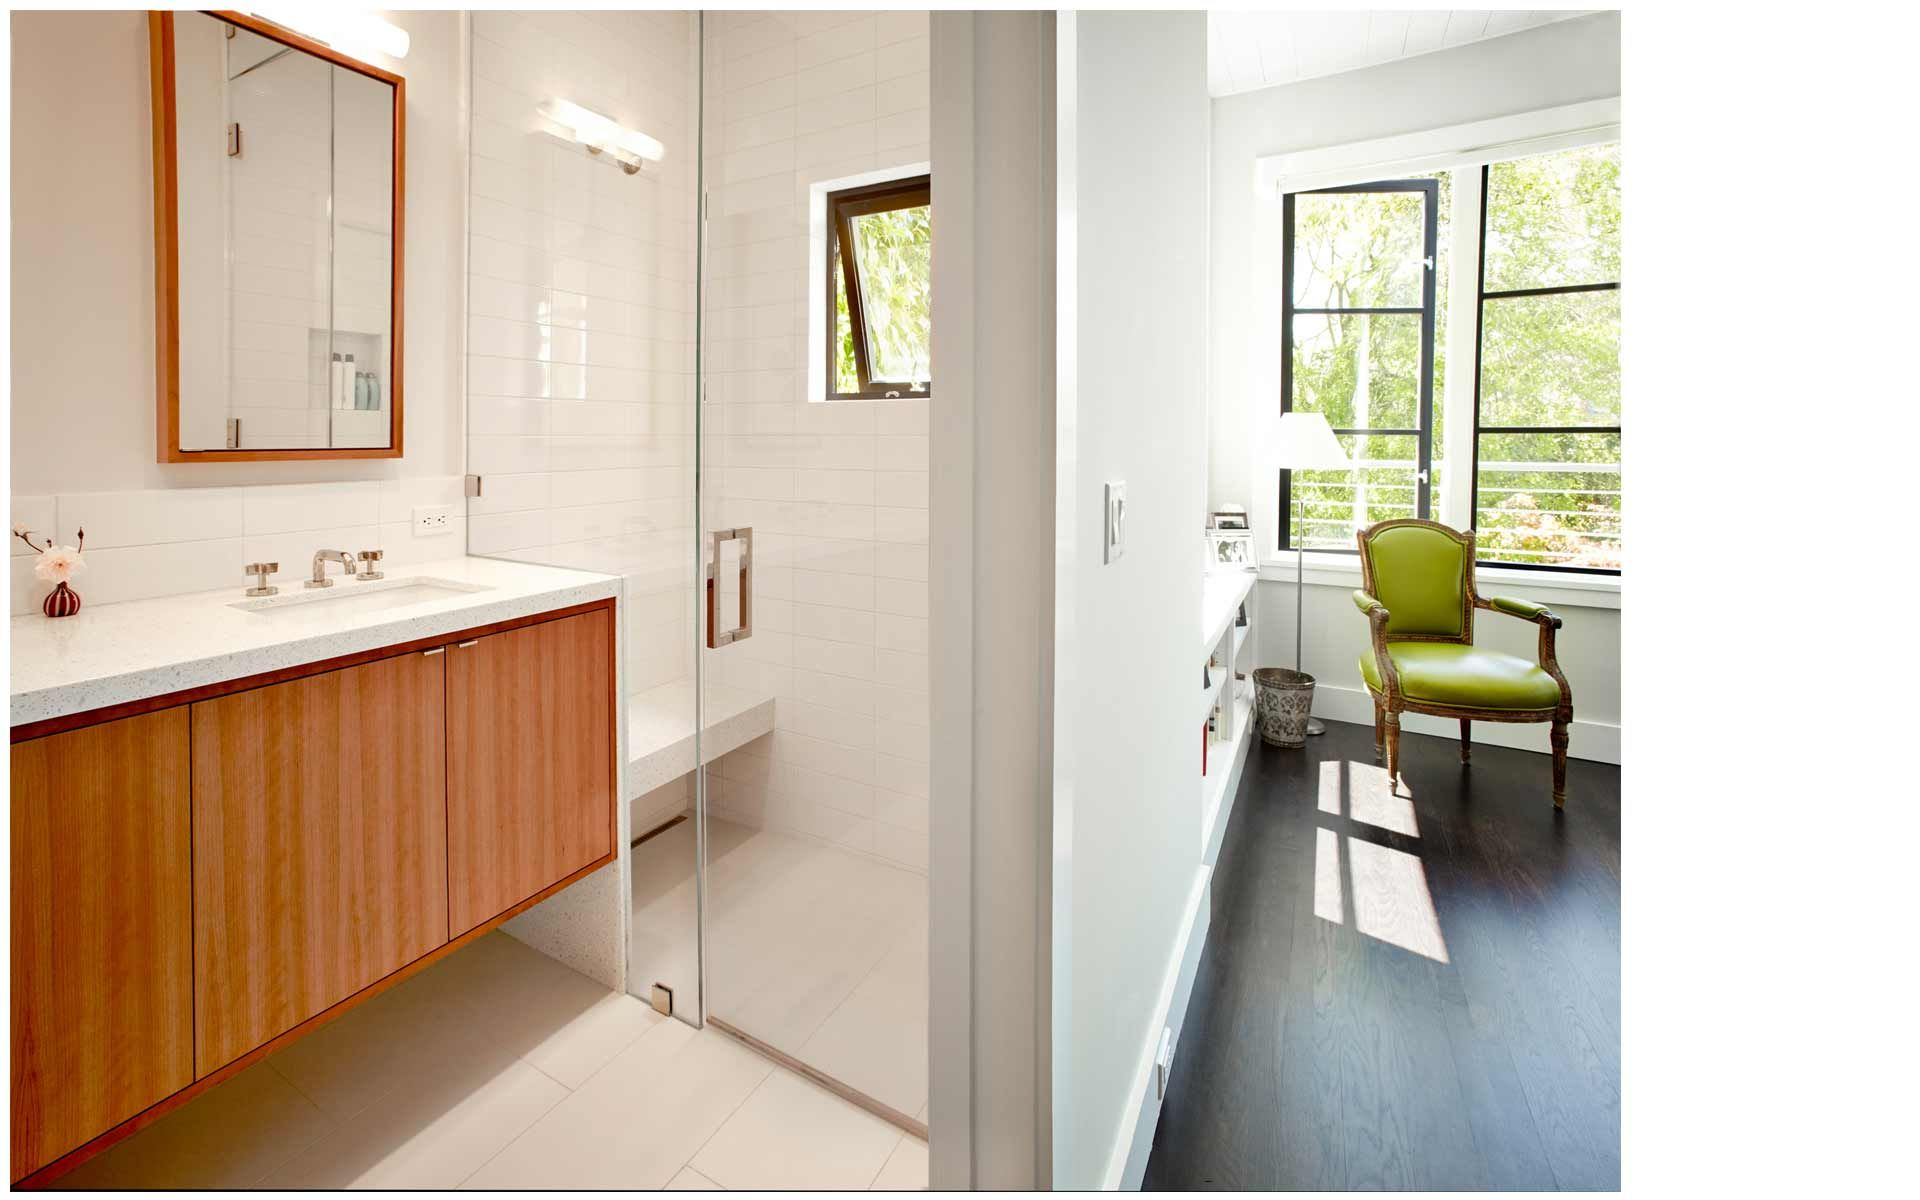 Bathroom Design San Francisco Brilliant Jeff King And Company Award Winning Green Building And Remodeling Inspiration